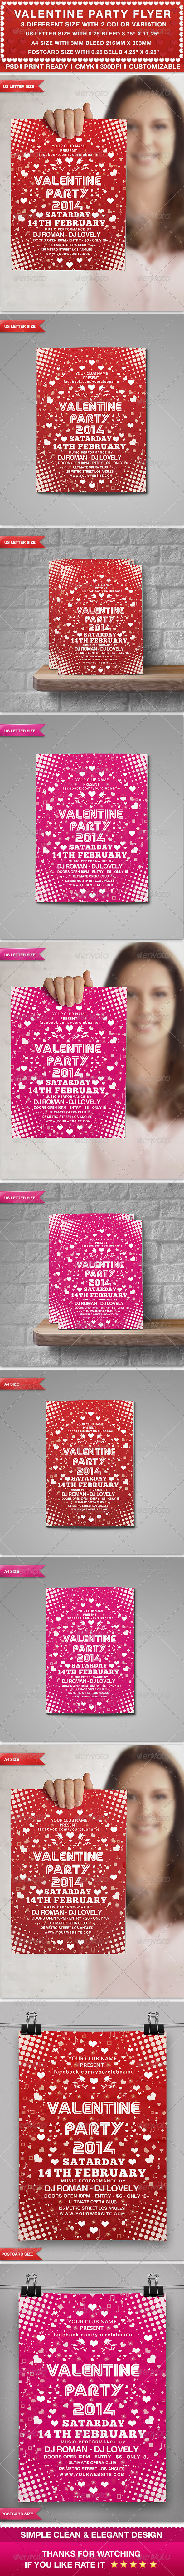 GraphicRiver Valentine s Party Flyer 6614504